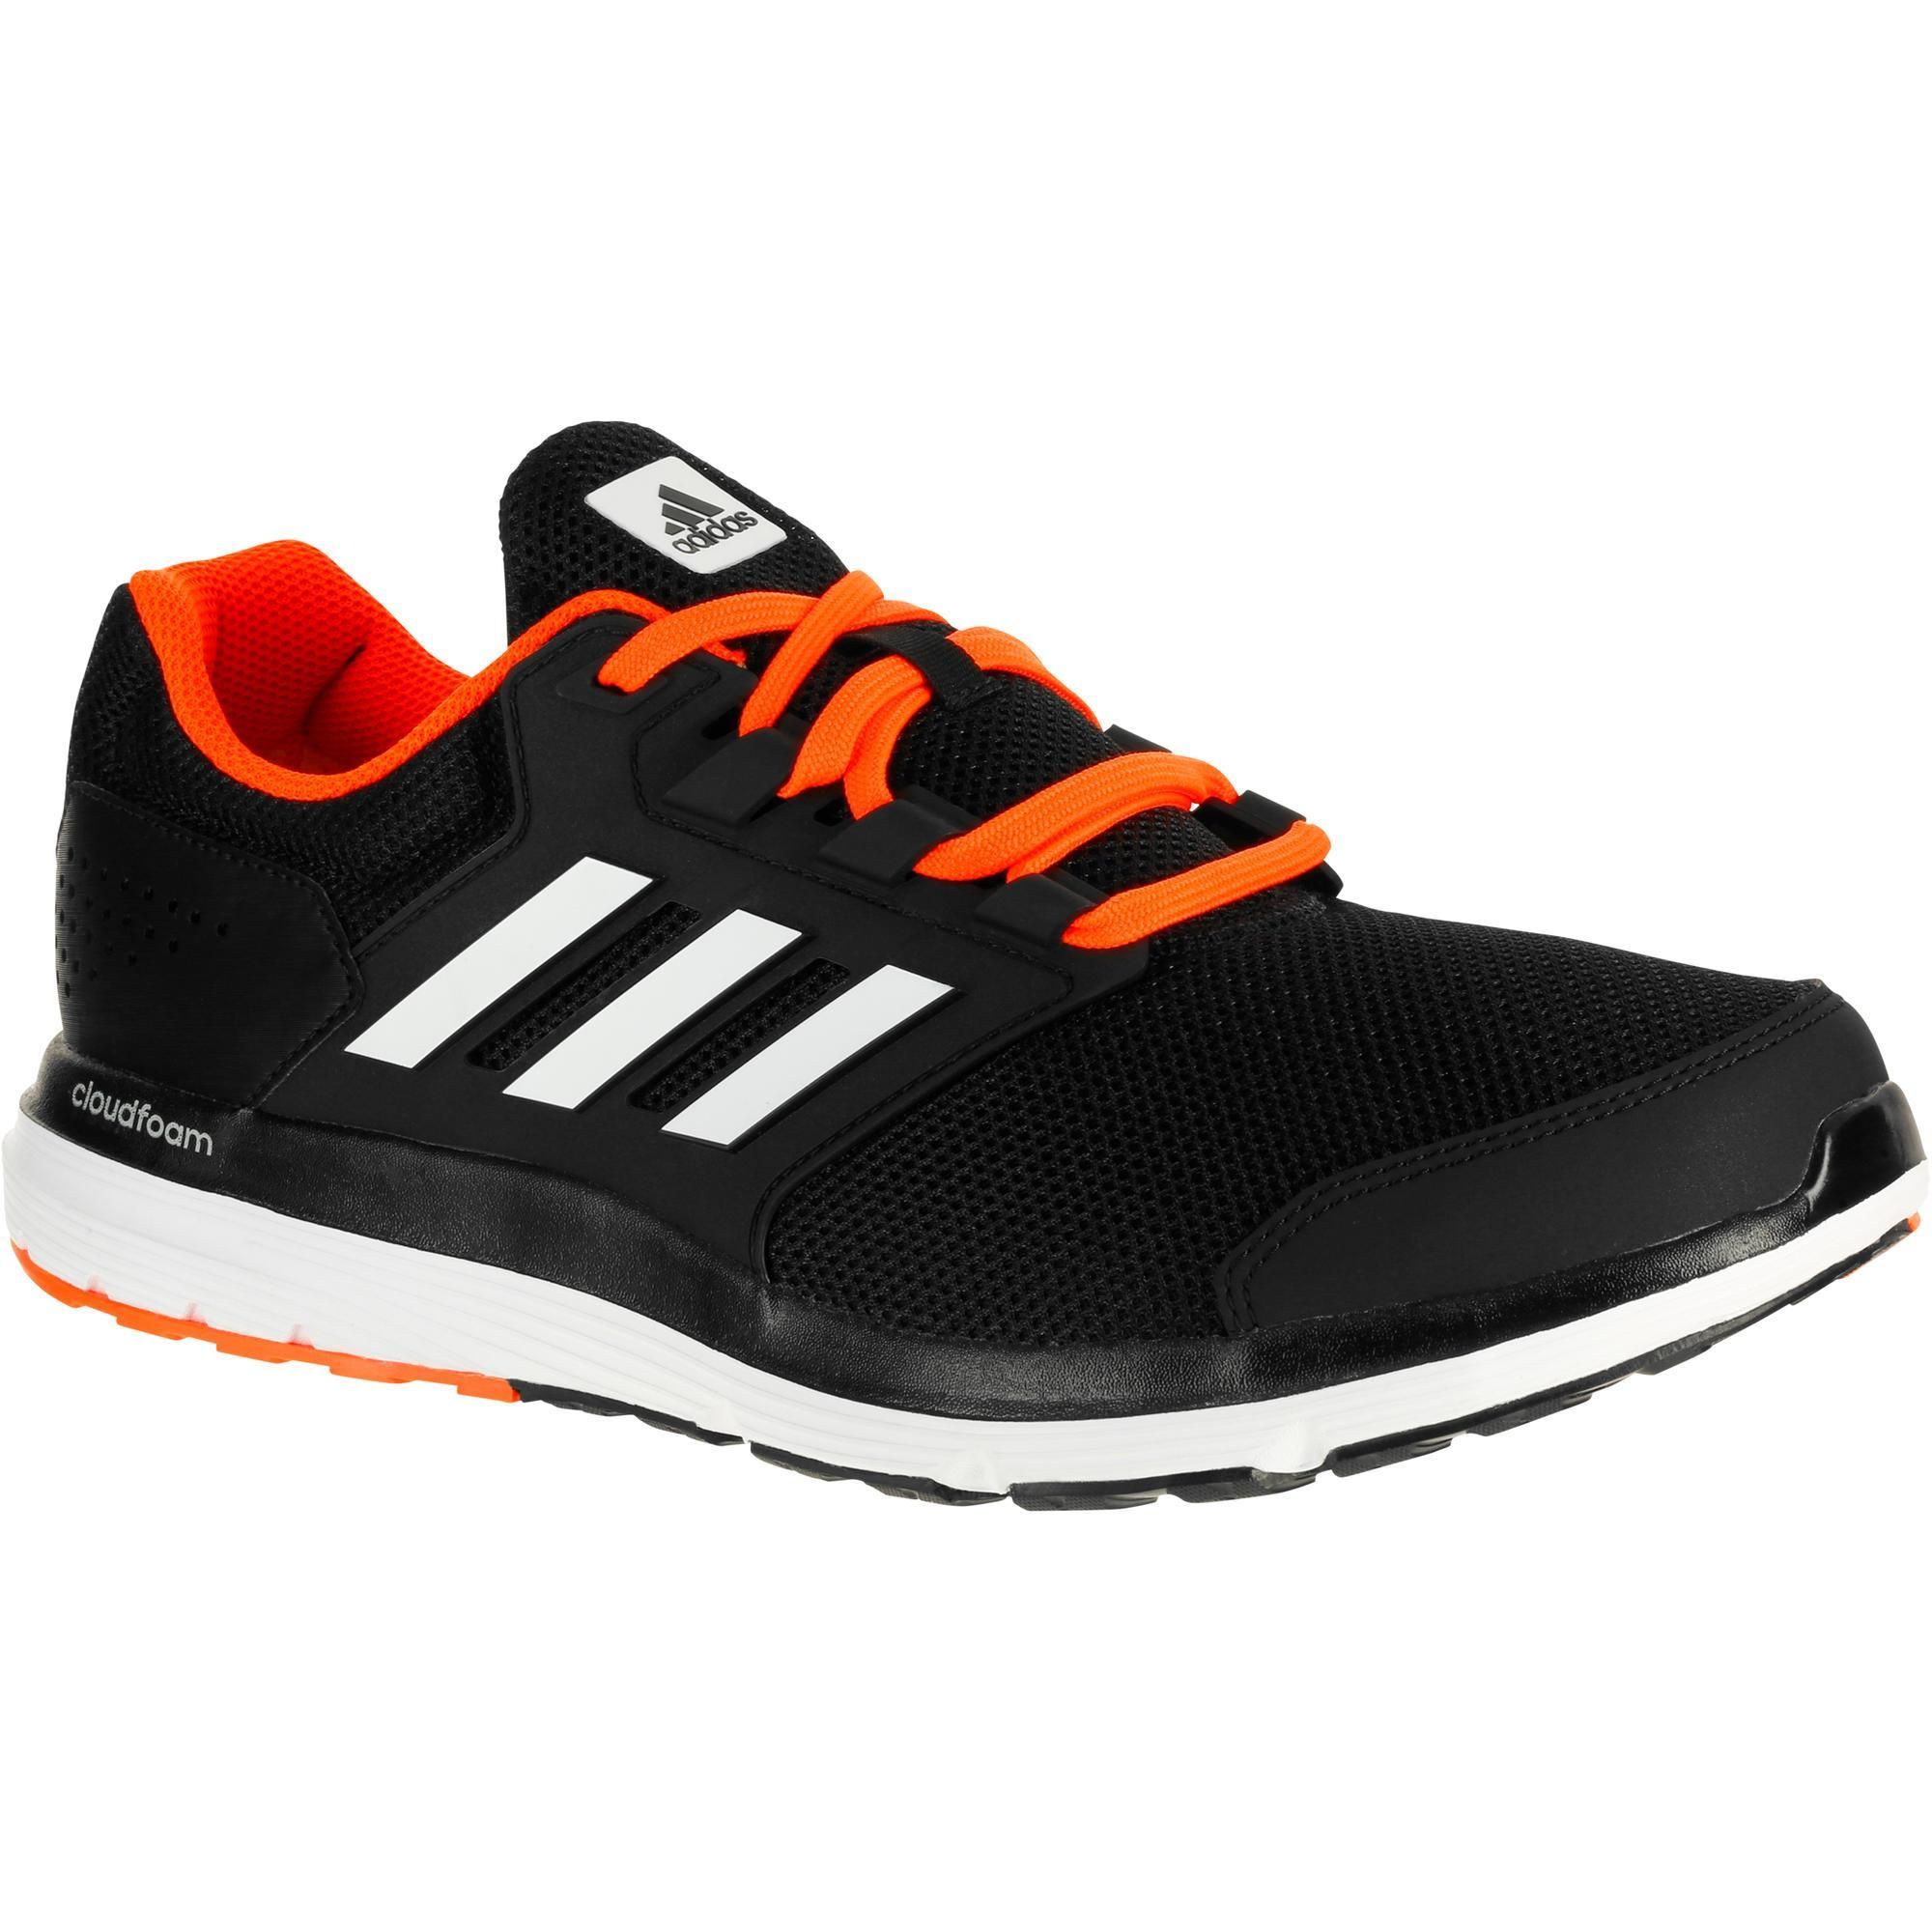 grossiste 171f0 12777 adidas chaussure course pied